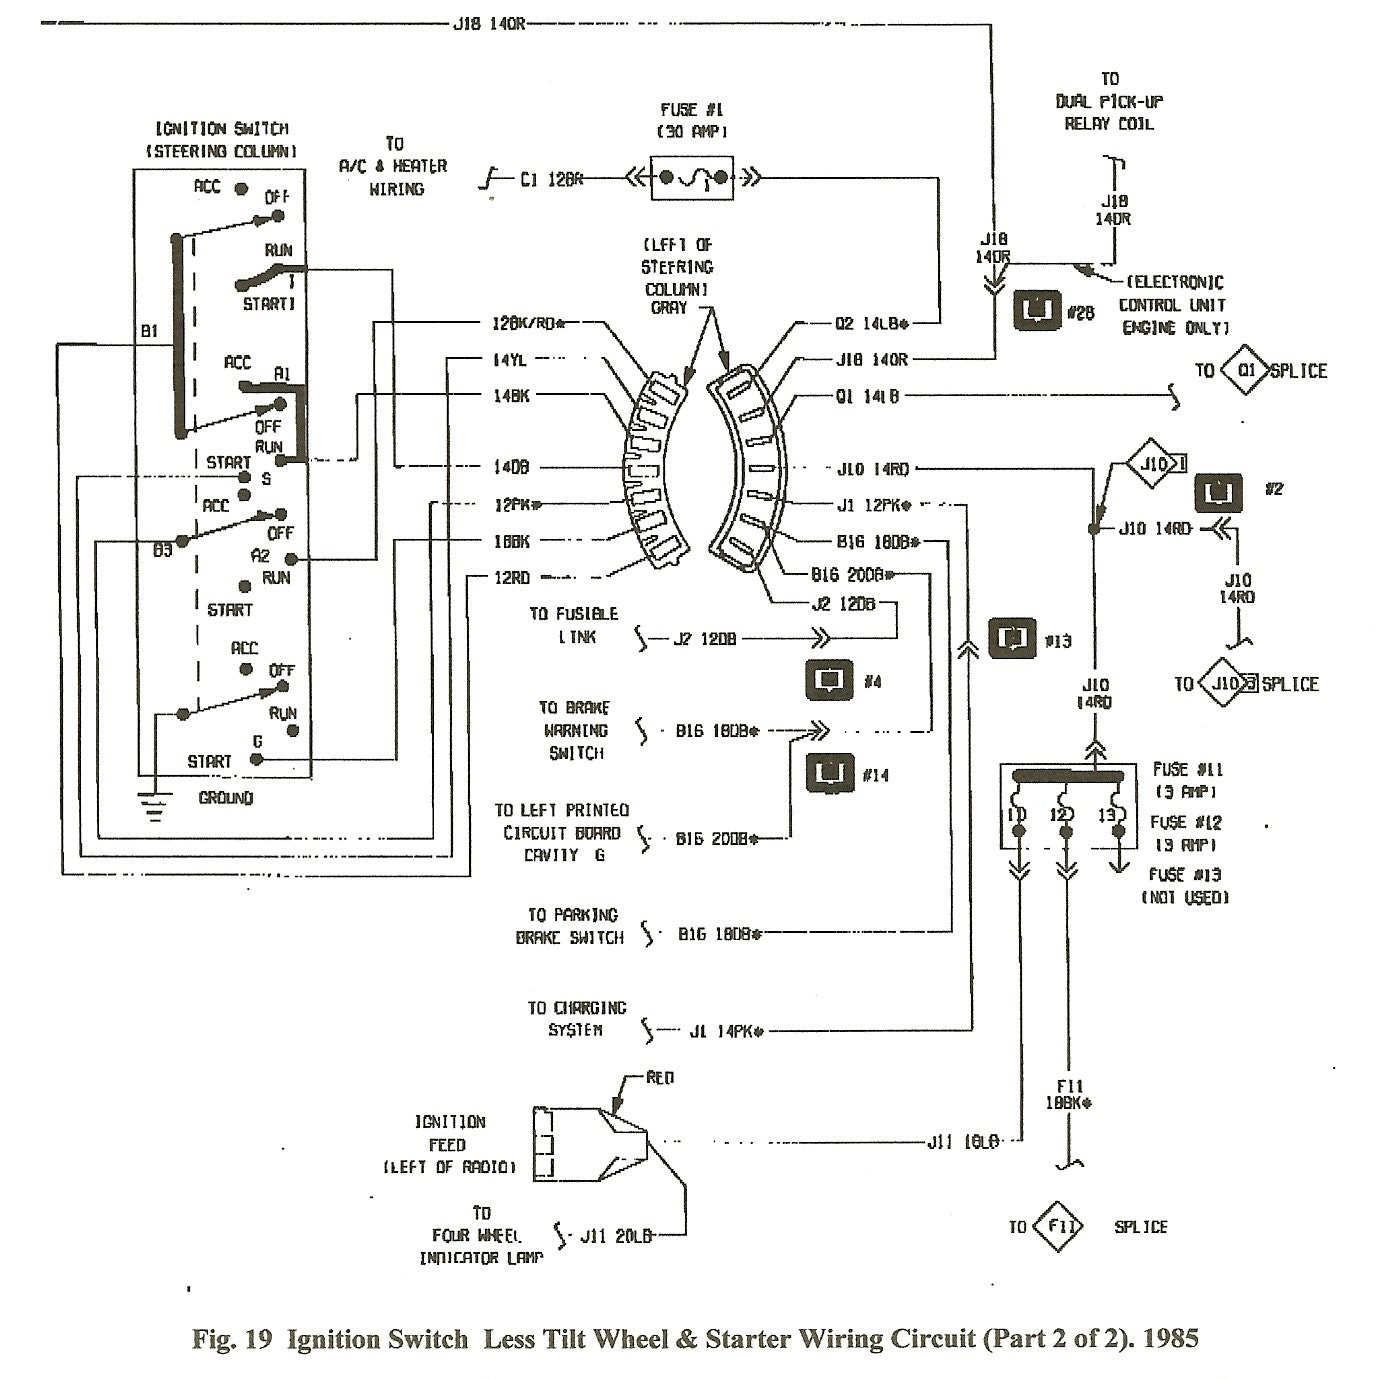 Wiring Diagram 1969 Buick Skylark 69 as well 1985 Dodge Ramcharger Wiring Harness together with Saturn L300 Oxygen Sensor Location as well Vw Passat Wiring Diagram 2008 Efcaviation 2009 Jetta Tdi Fuse as well 5 7 Vortec Chevy Truck Alternator Wiring Diagram. on maserati fuse box